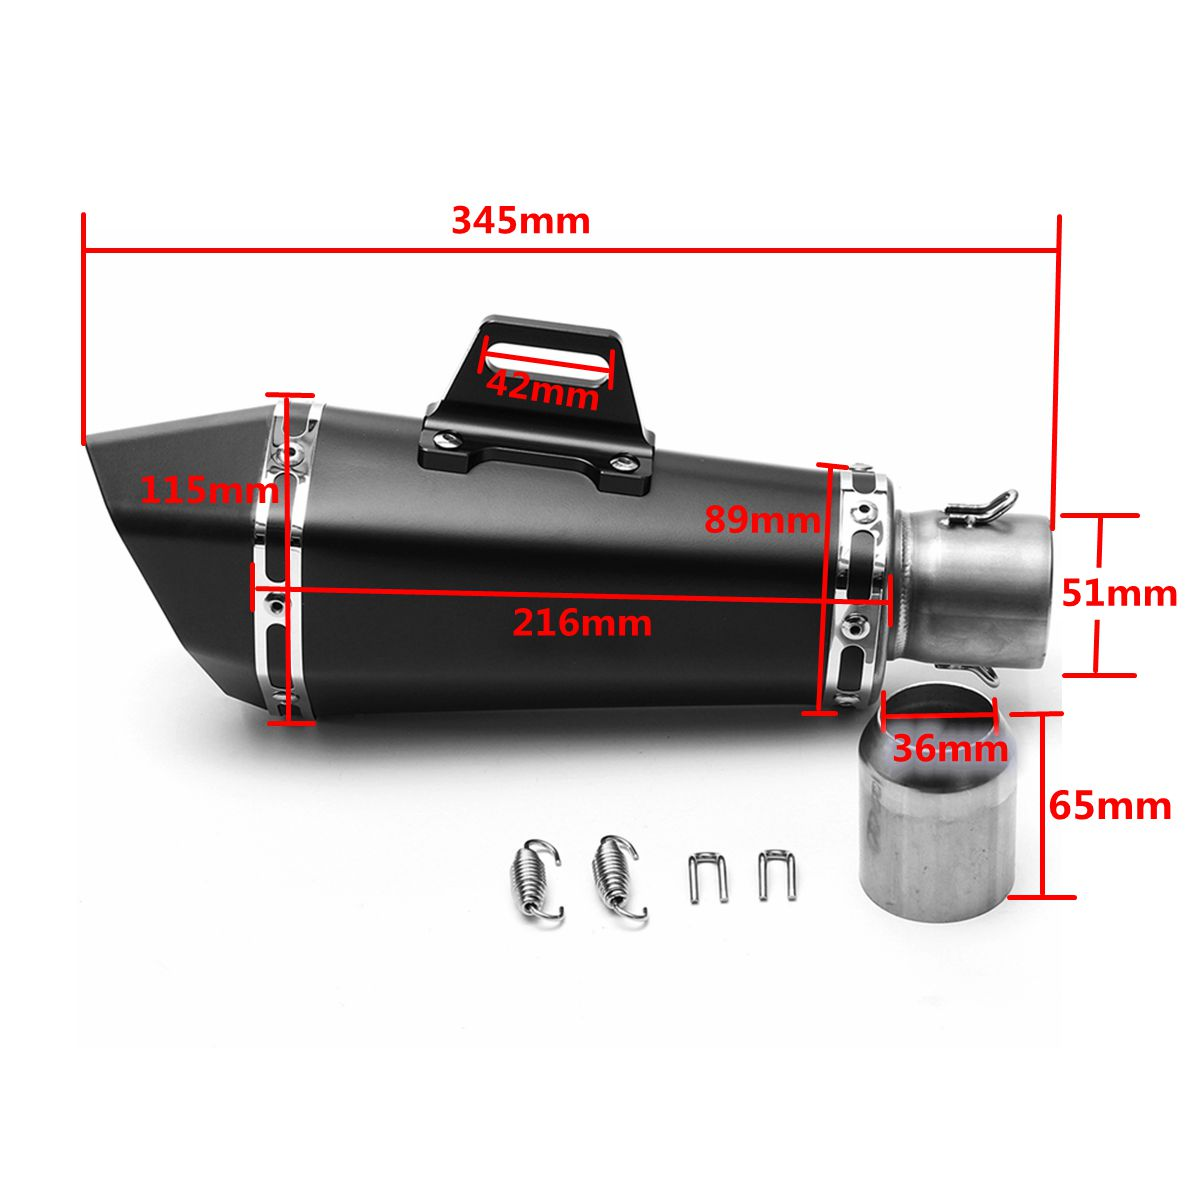 36mm-51mm Motorcycle Aluminum Full Exhaust Muffler Pipe System Universal